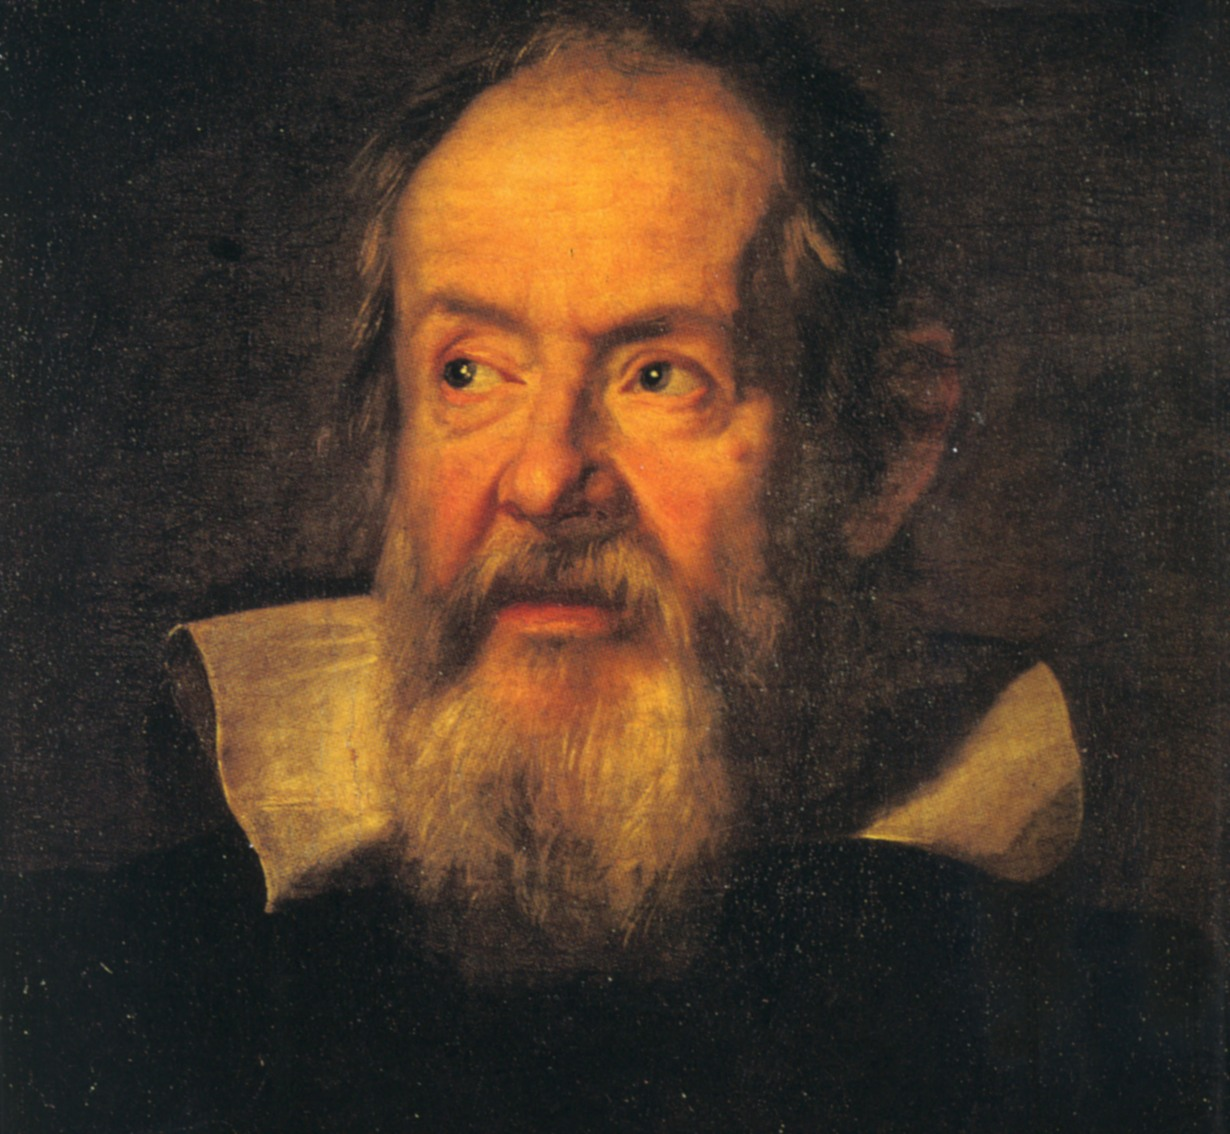 Galileo, one of the most renowned astronomers, also served the House of Medici as an astronomer.   Justus Sustermans/Wikimedia Commons  (public domain)